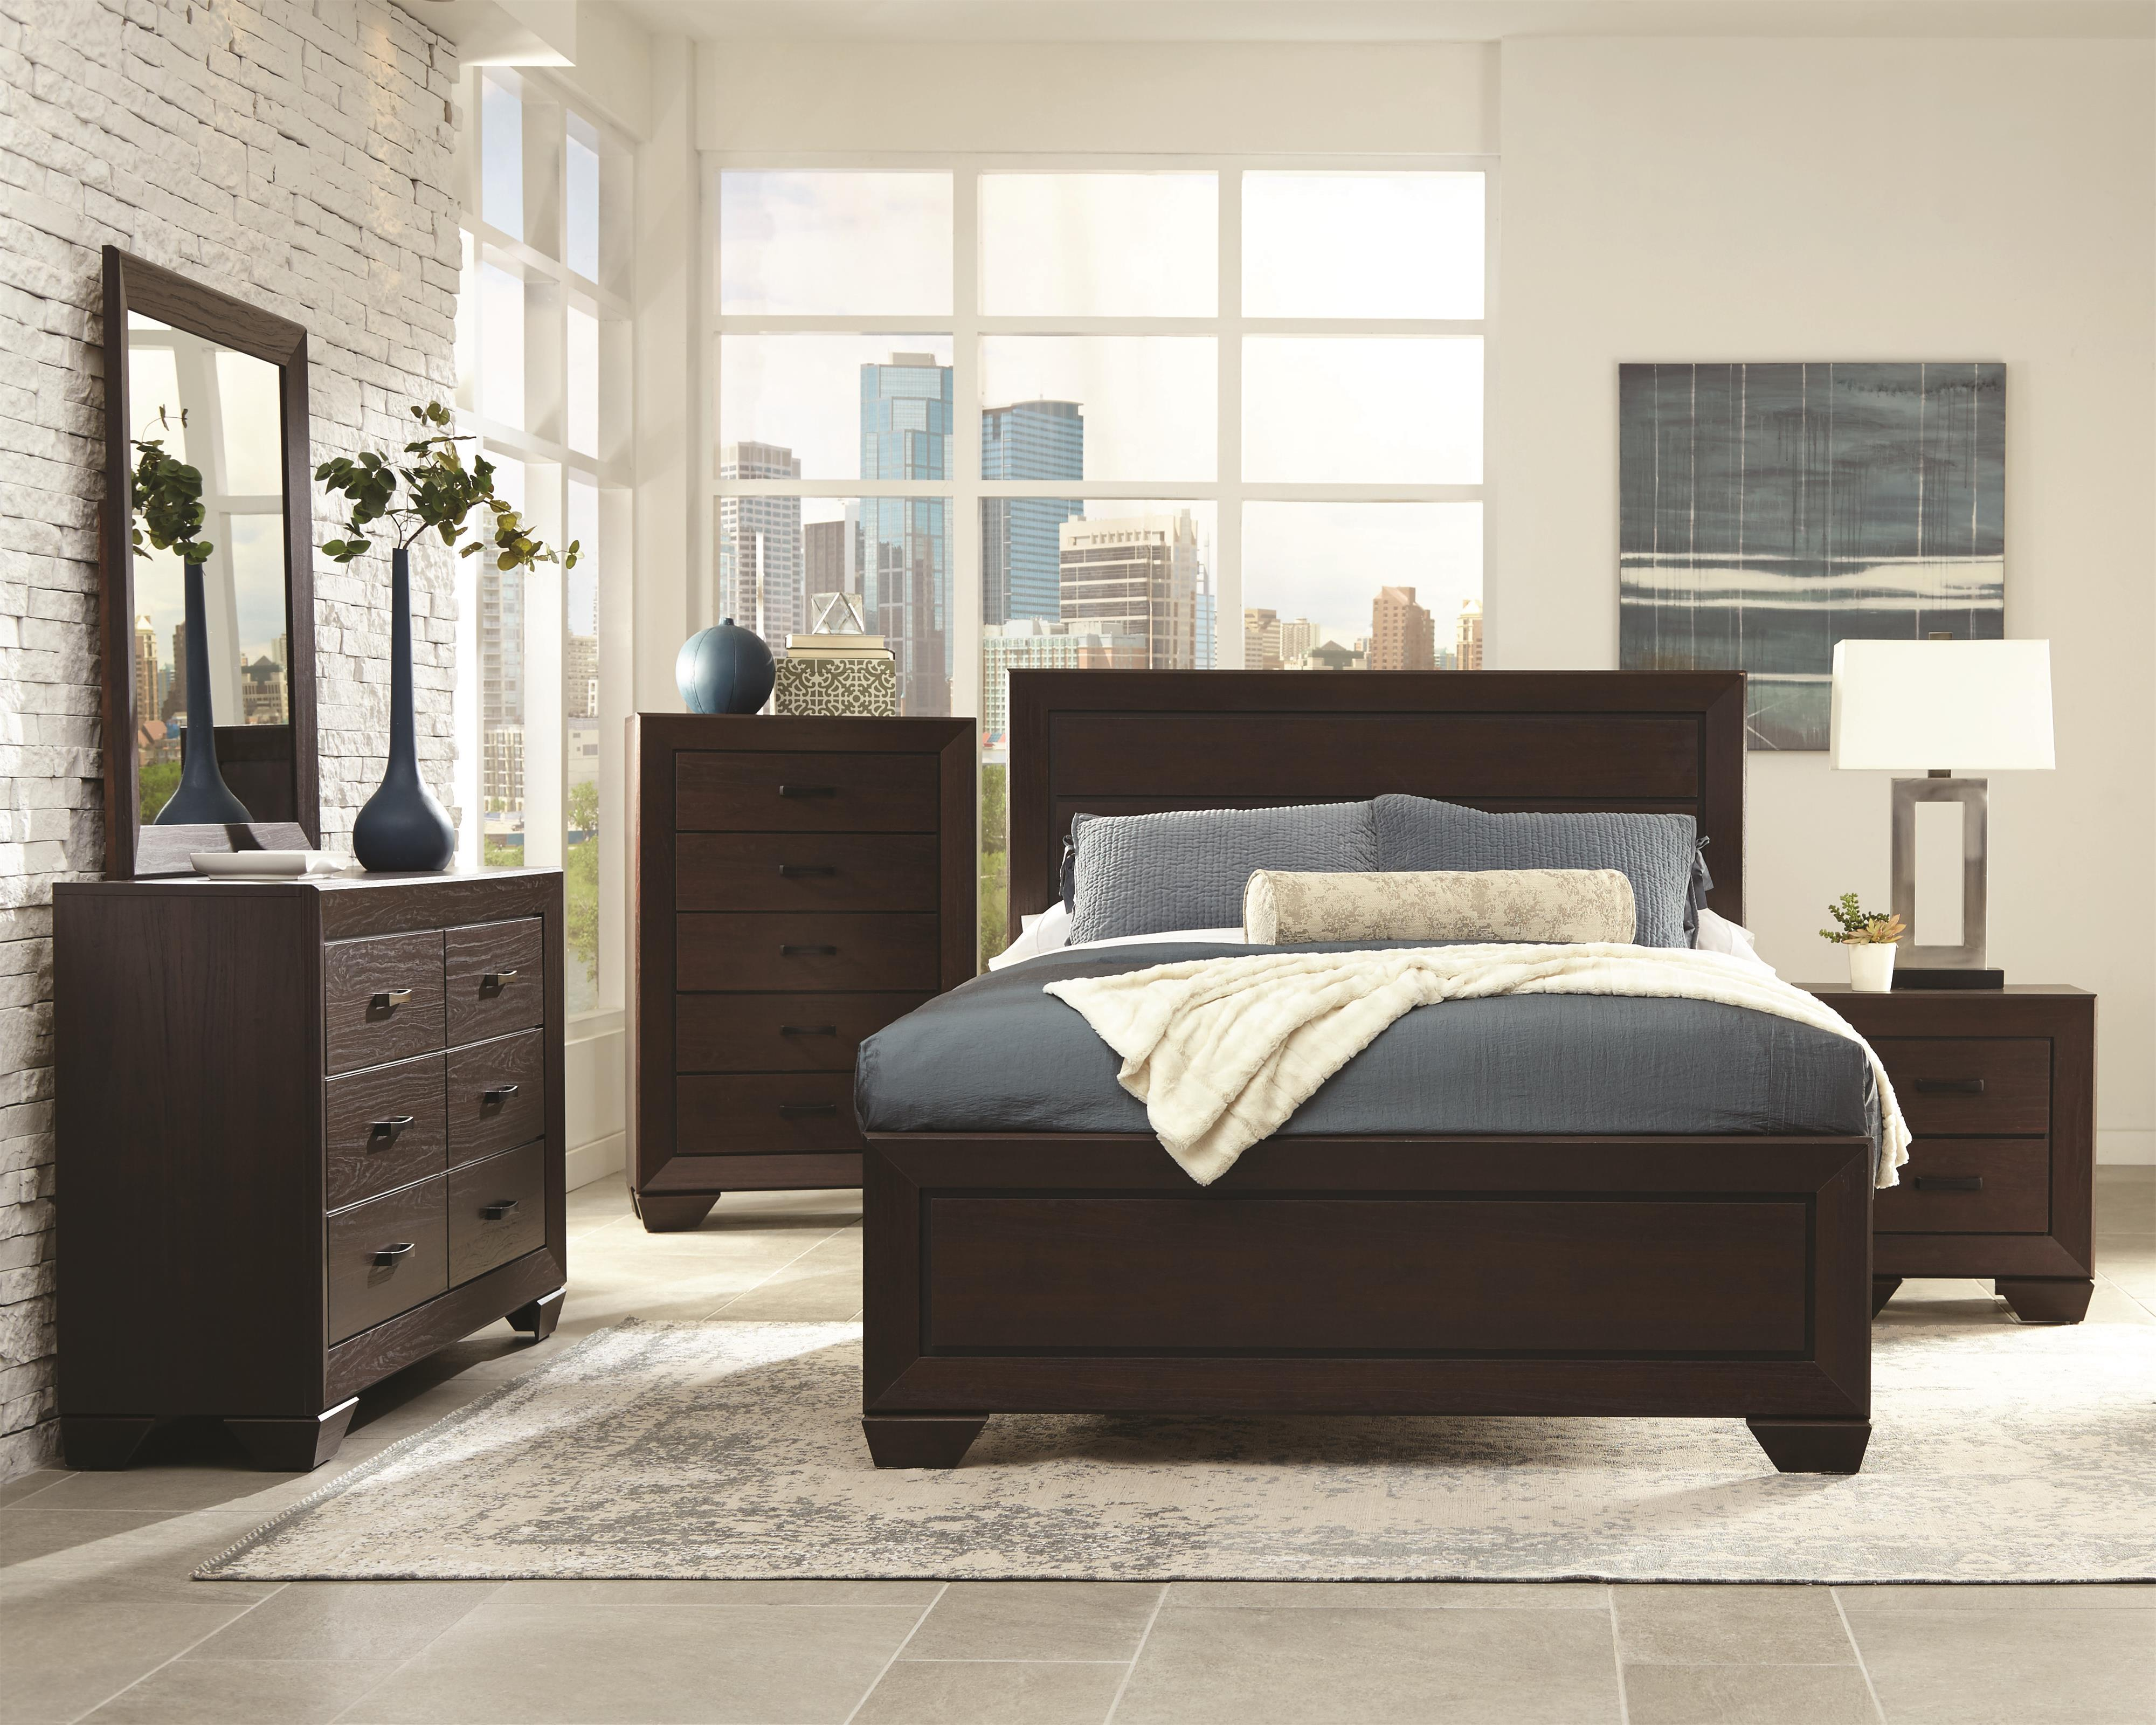 Coaster Fenbrook King Bedroom Group - Item Number: 20439 K Bedroom Group 1